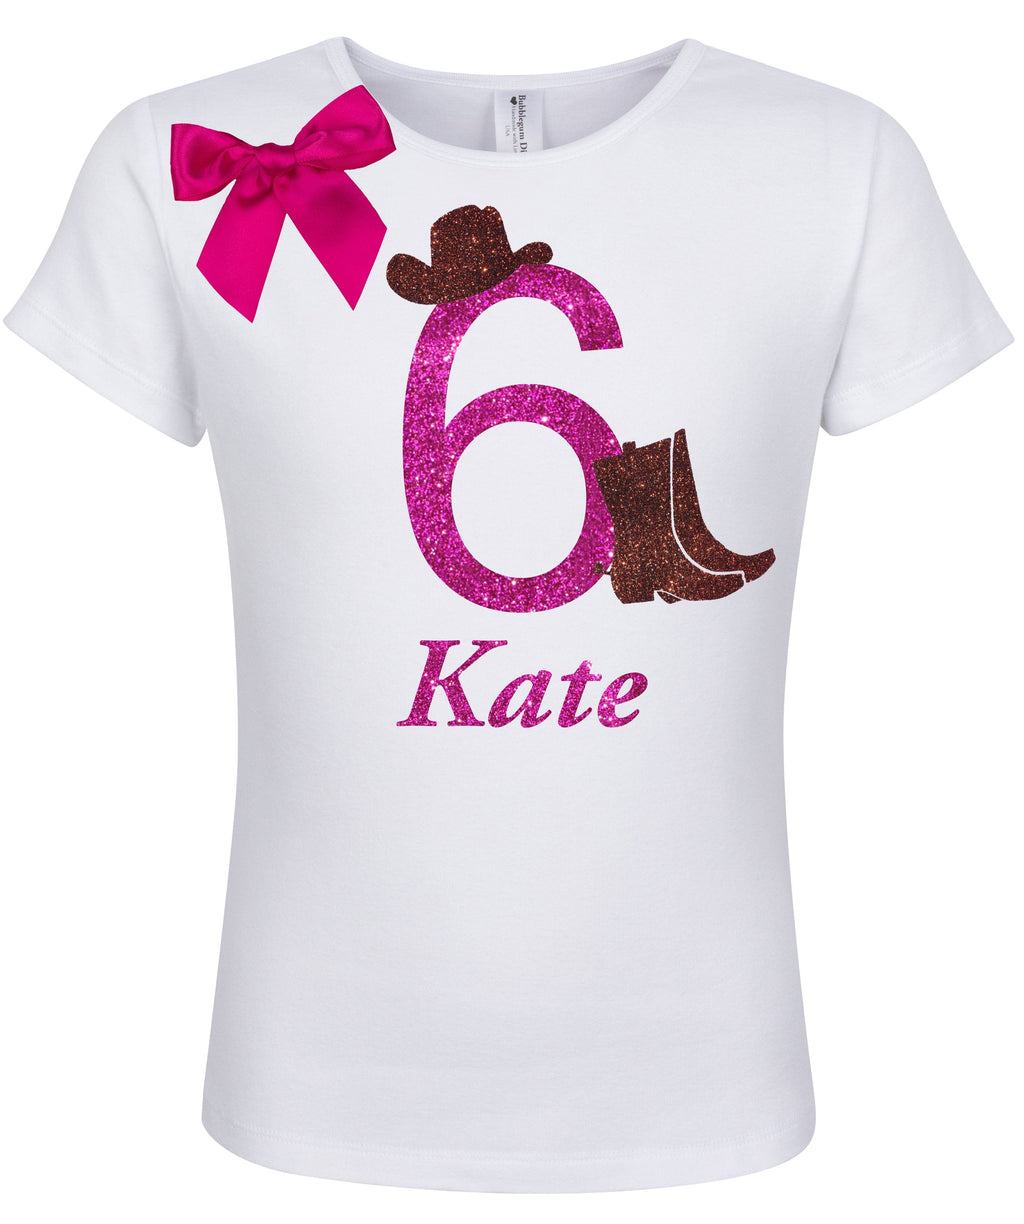 6th Birthday Shirt - Cowgirl Hat